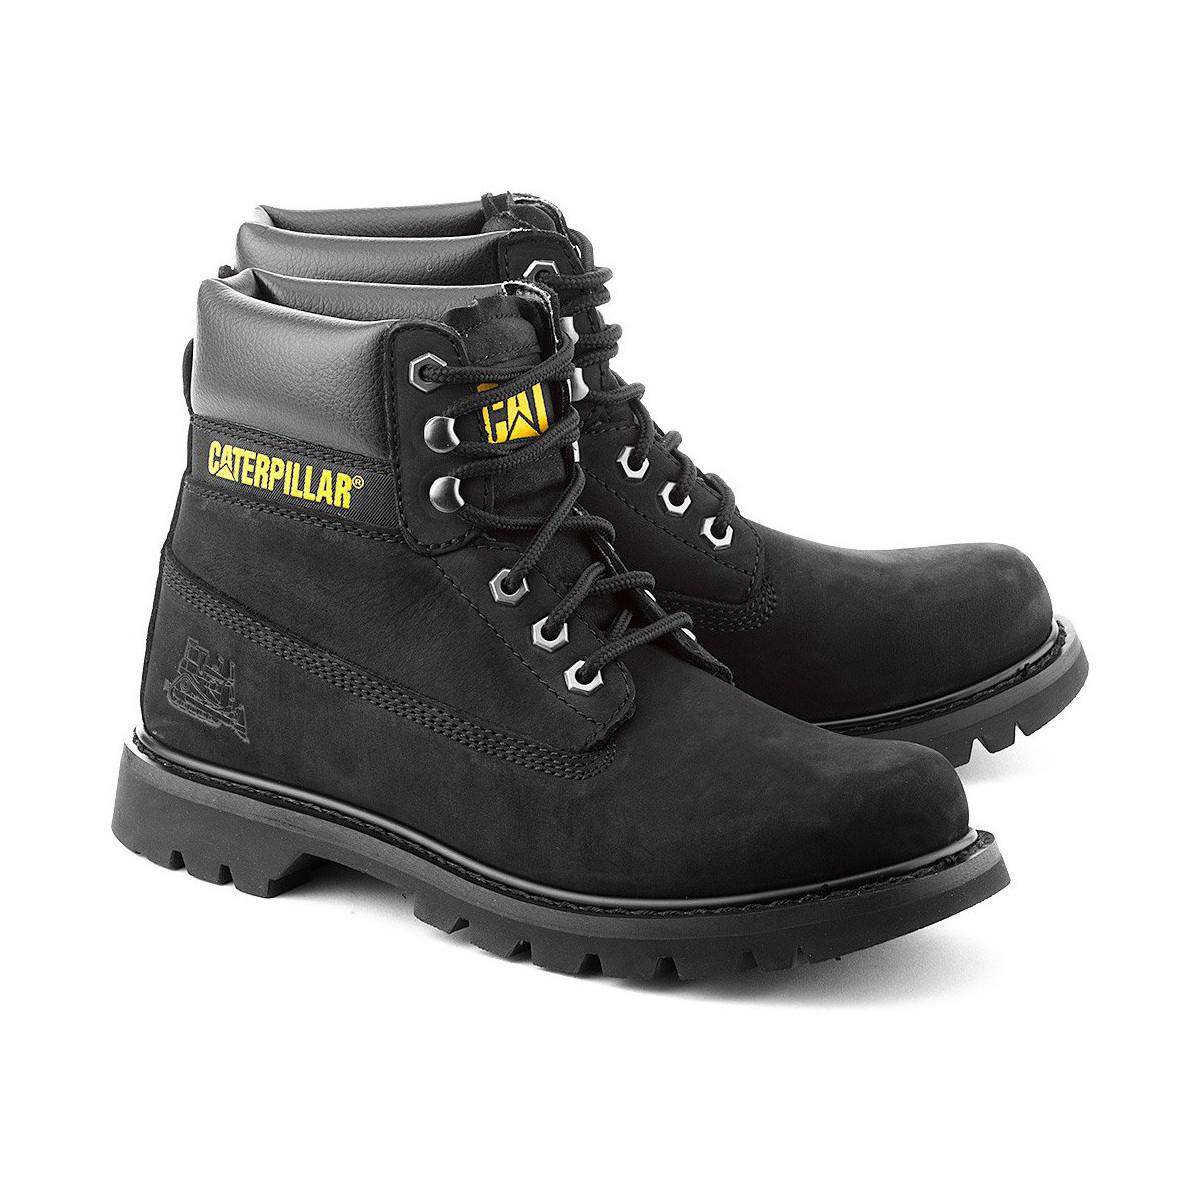 For Caterpillar Men Boots Colorado Mid In Black Lyst Men's UpwUYqB